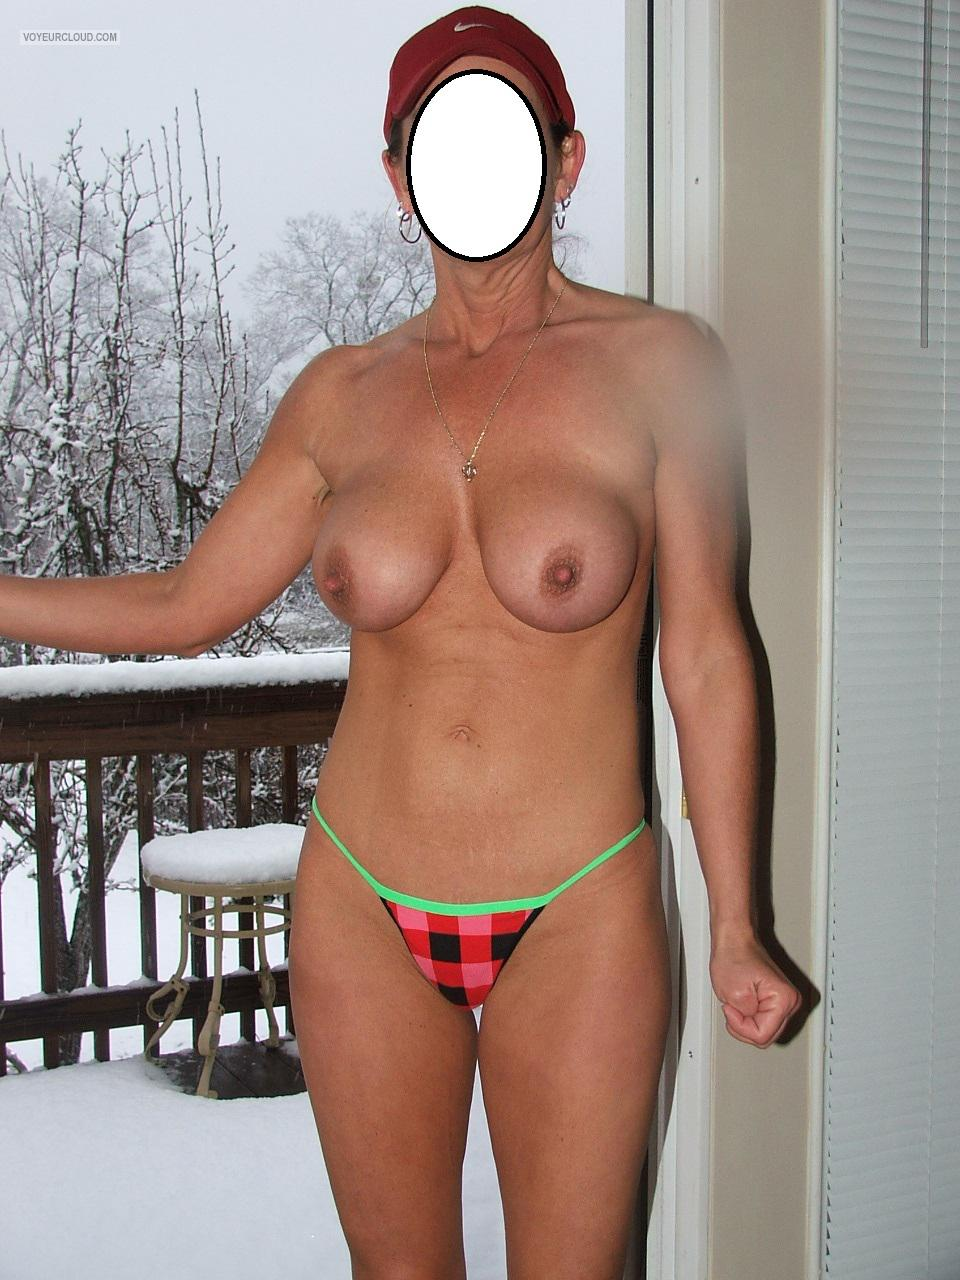 Tit Flash: Wife's Medium Tits - Rebel Chick from United States